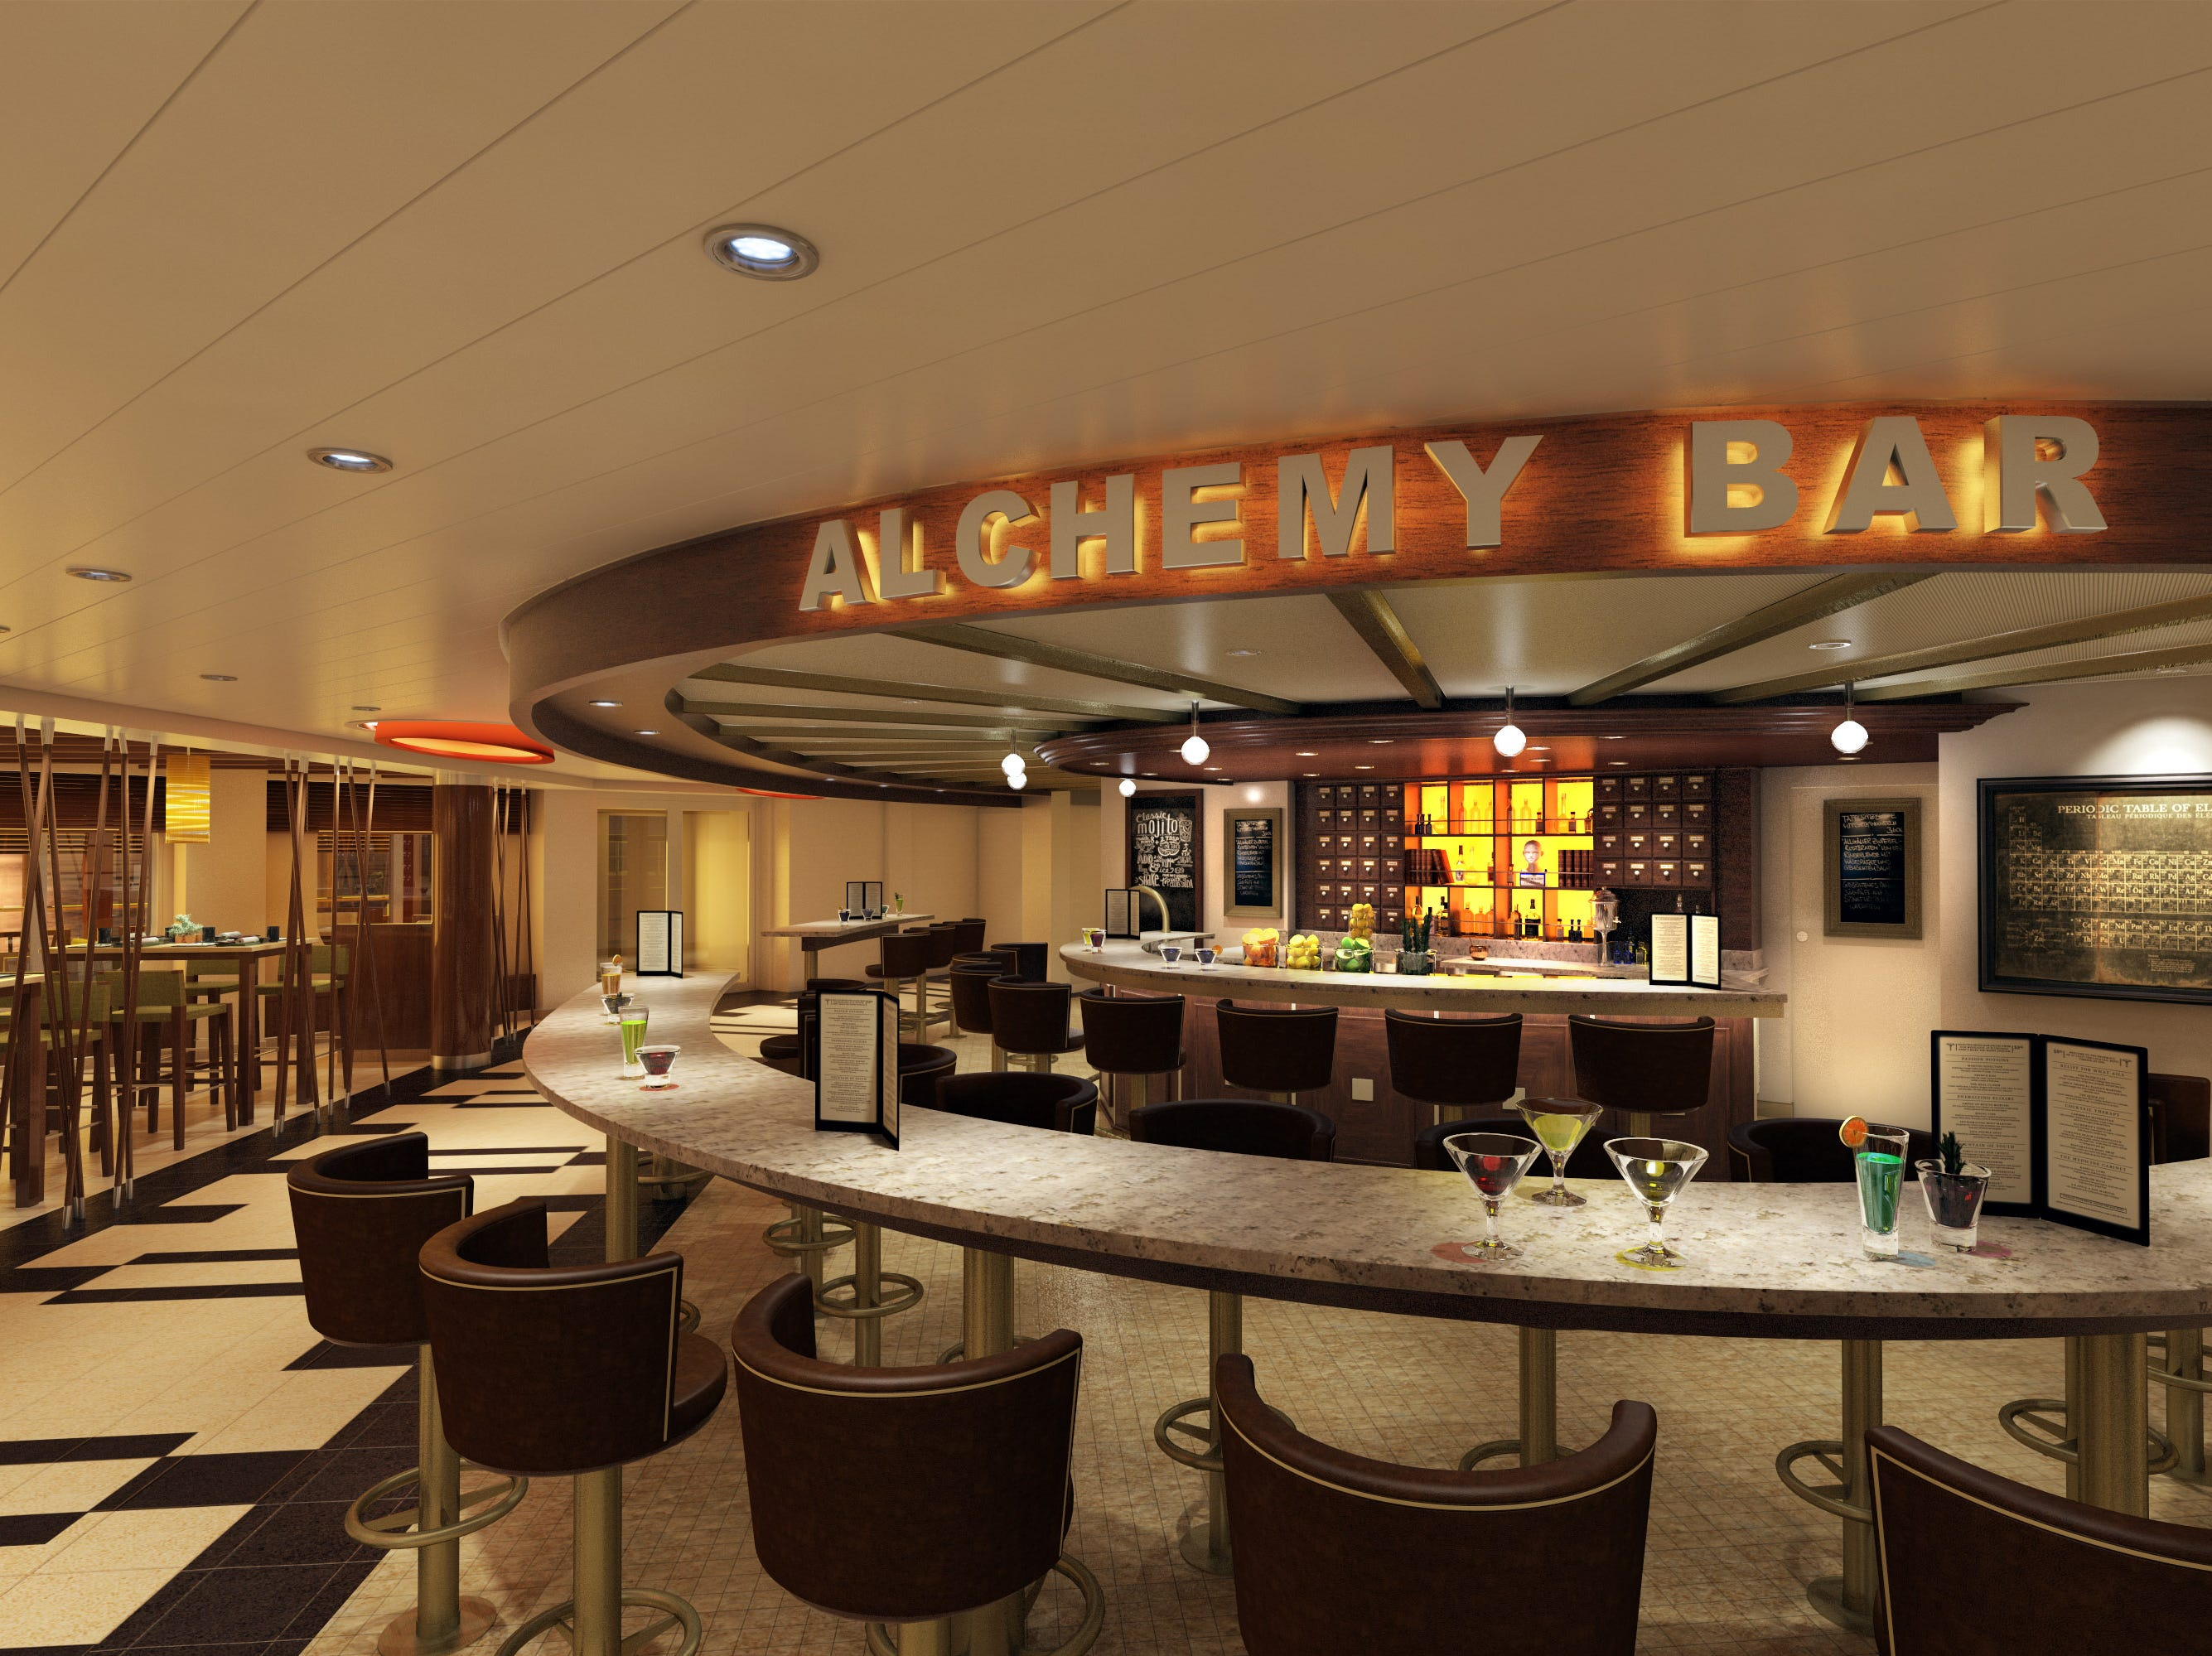 The Alchemy Bar, a staple of ships in the Carnival fleet, will be back on Carnival Panorama.